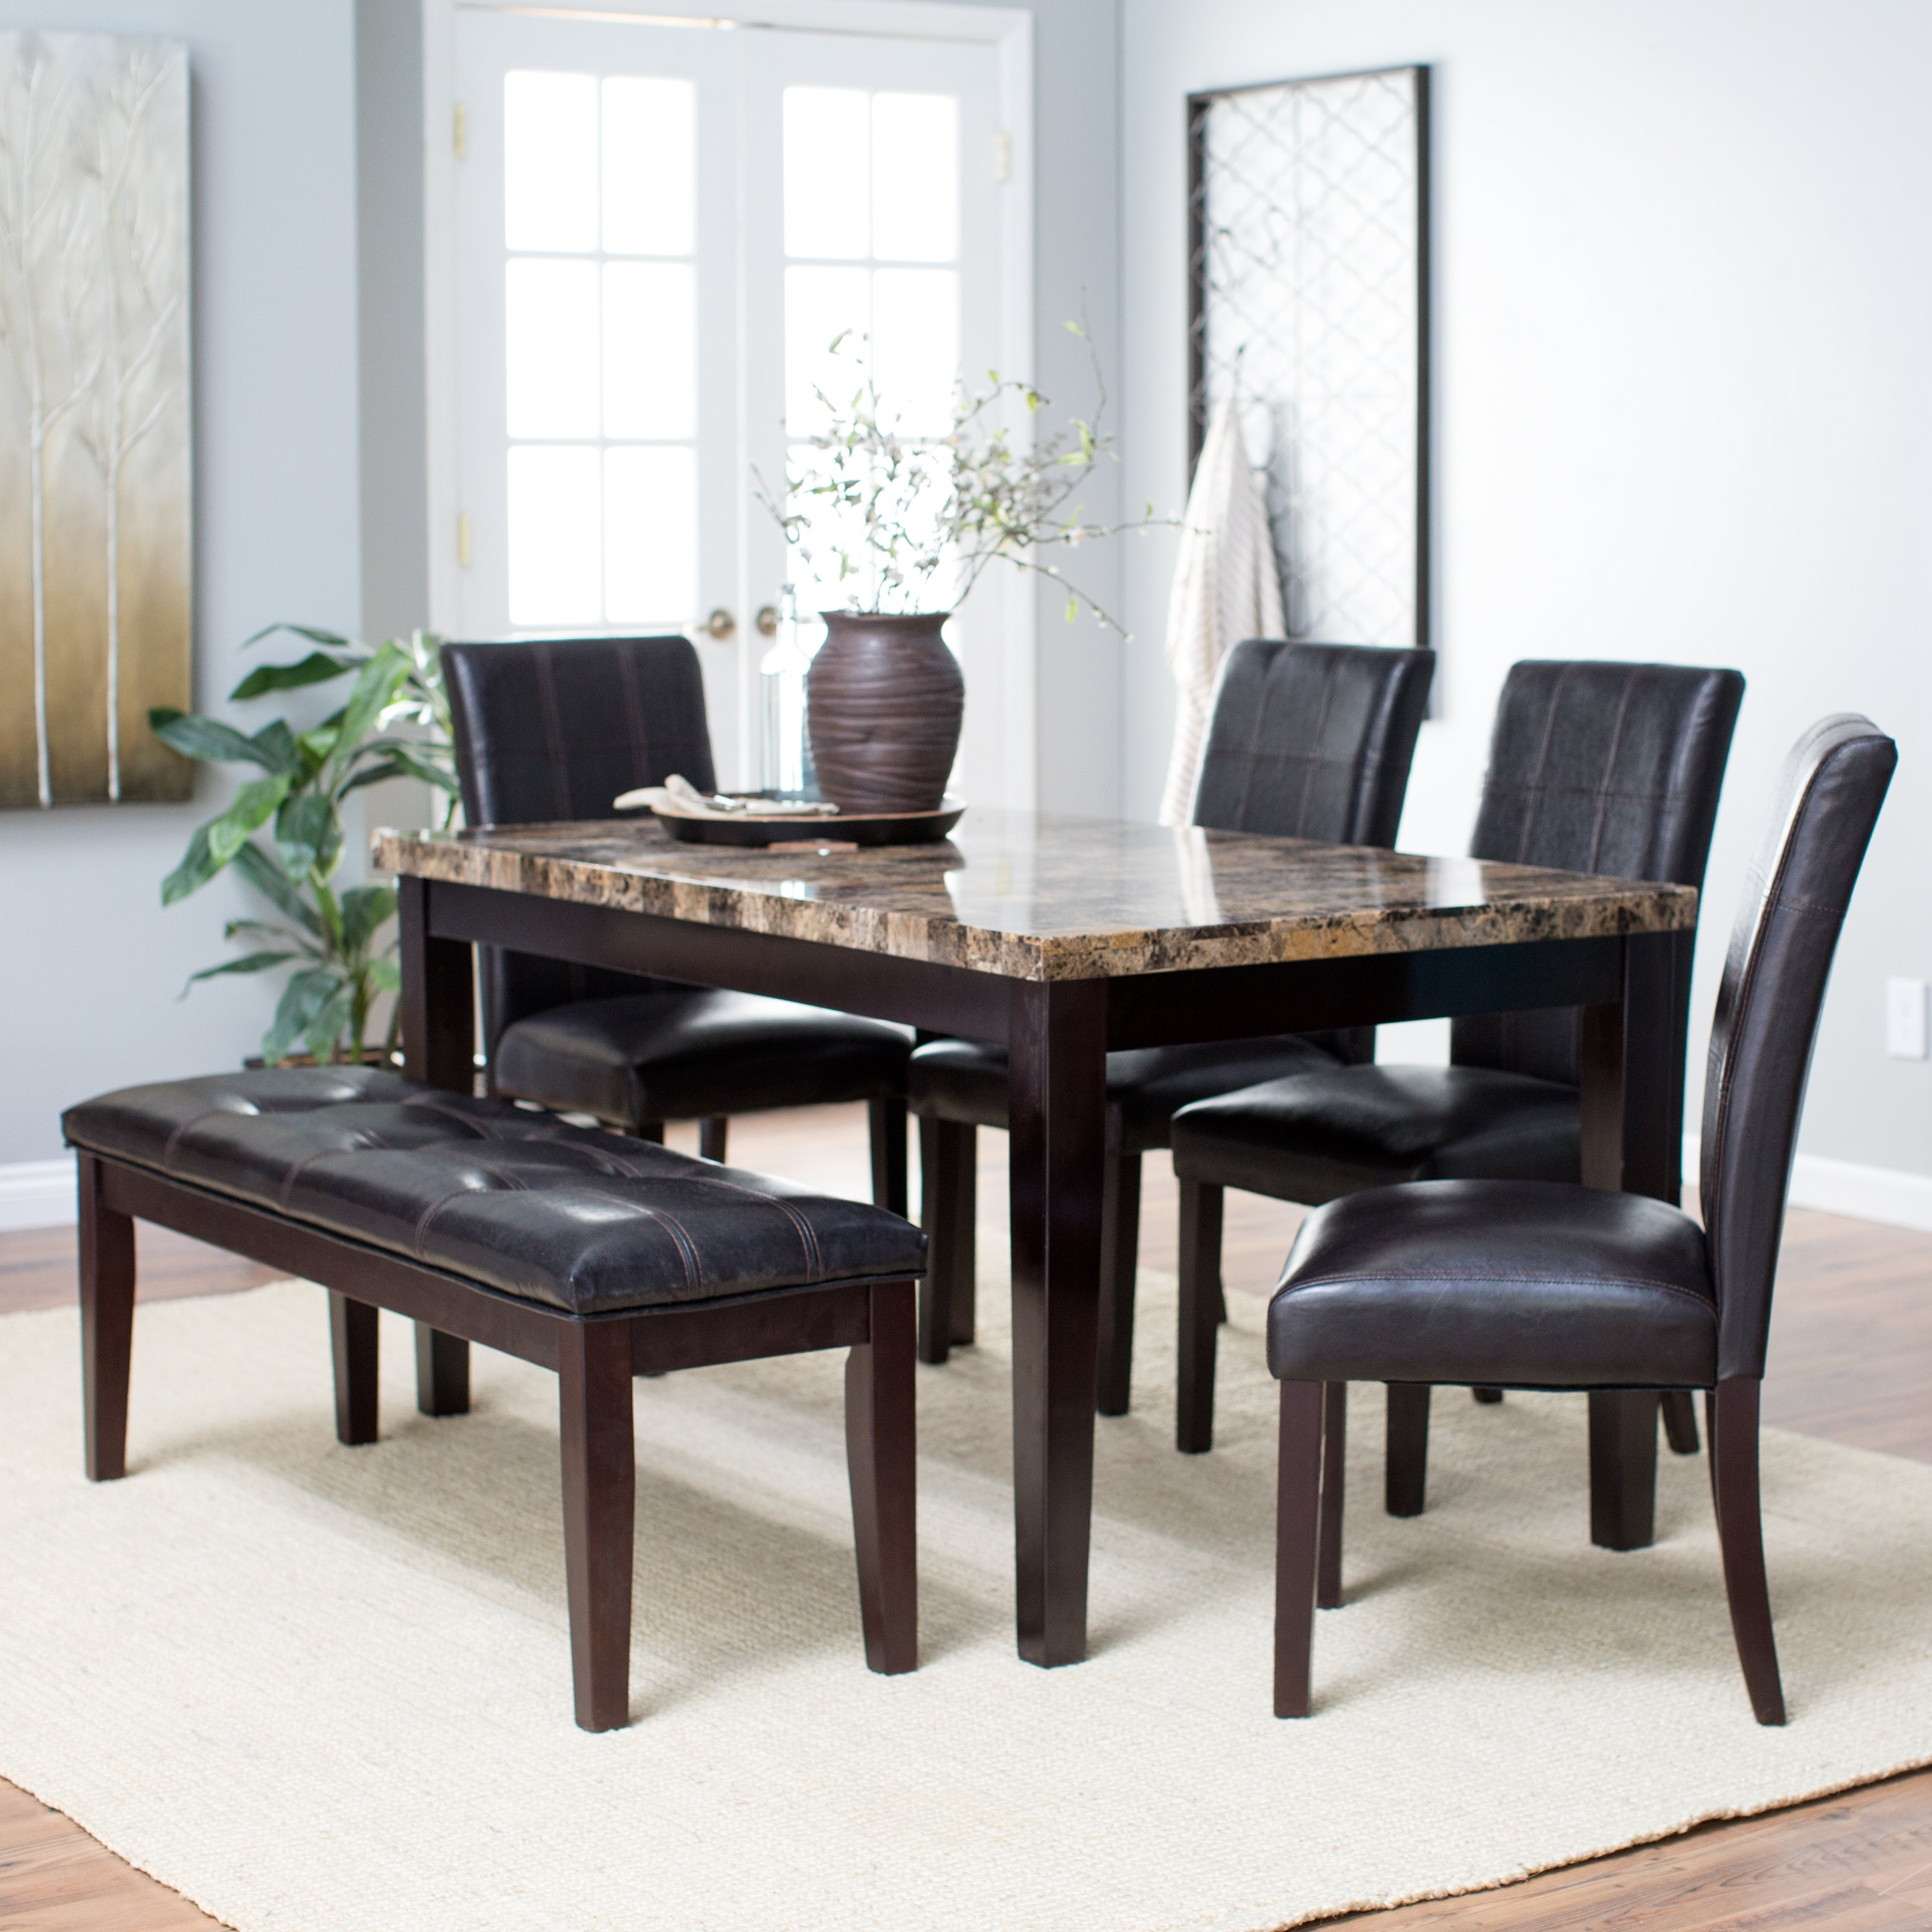 6 Piece Kitchen Table Set With Bench